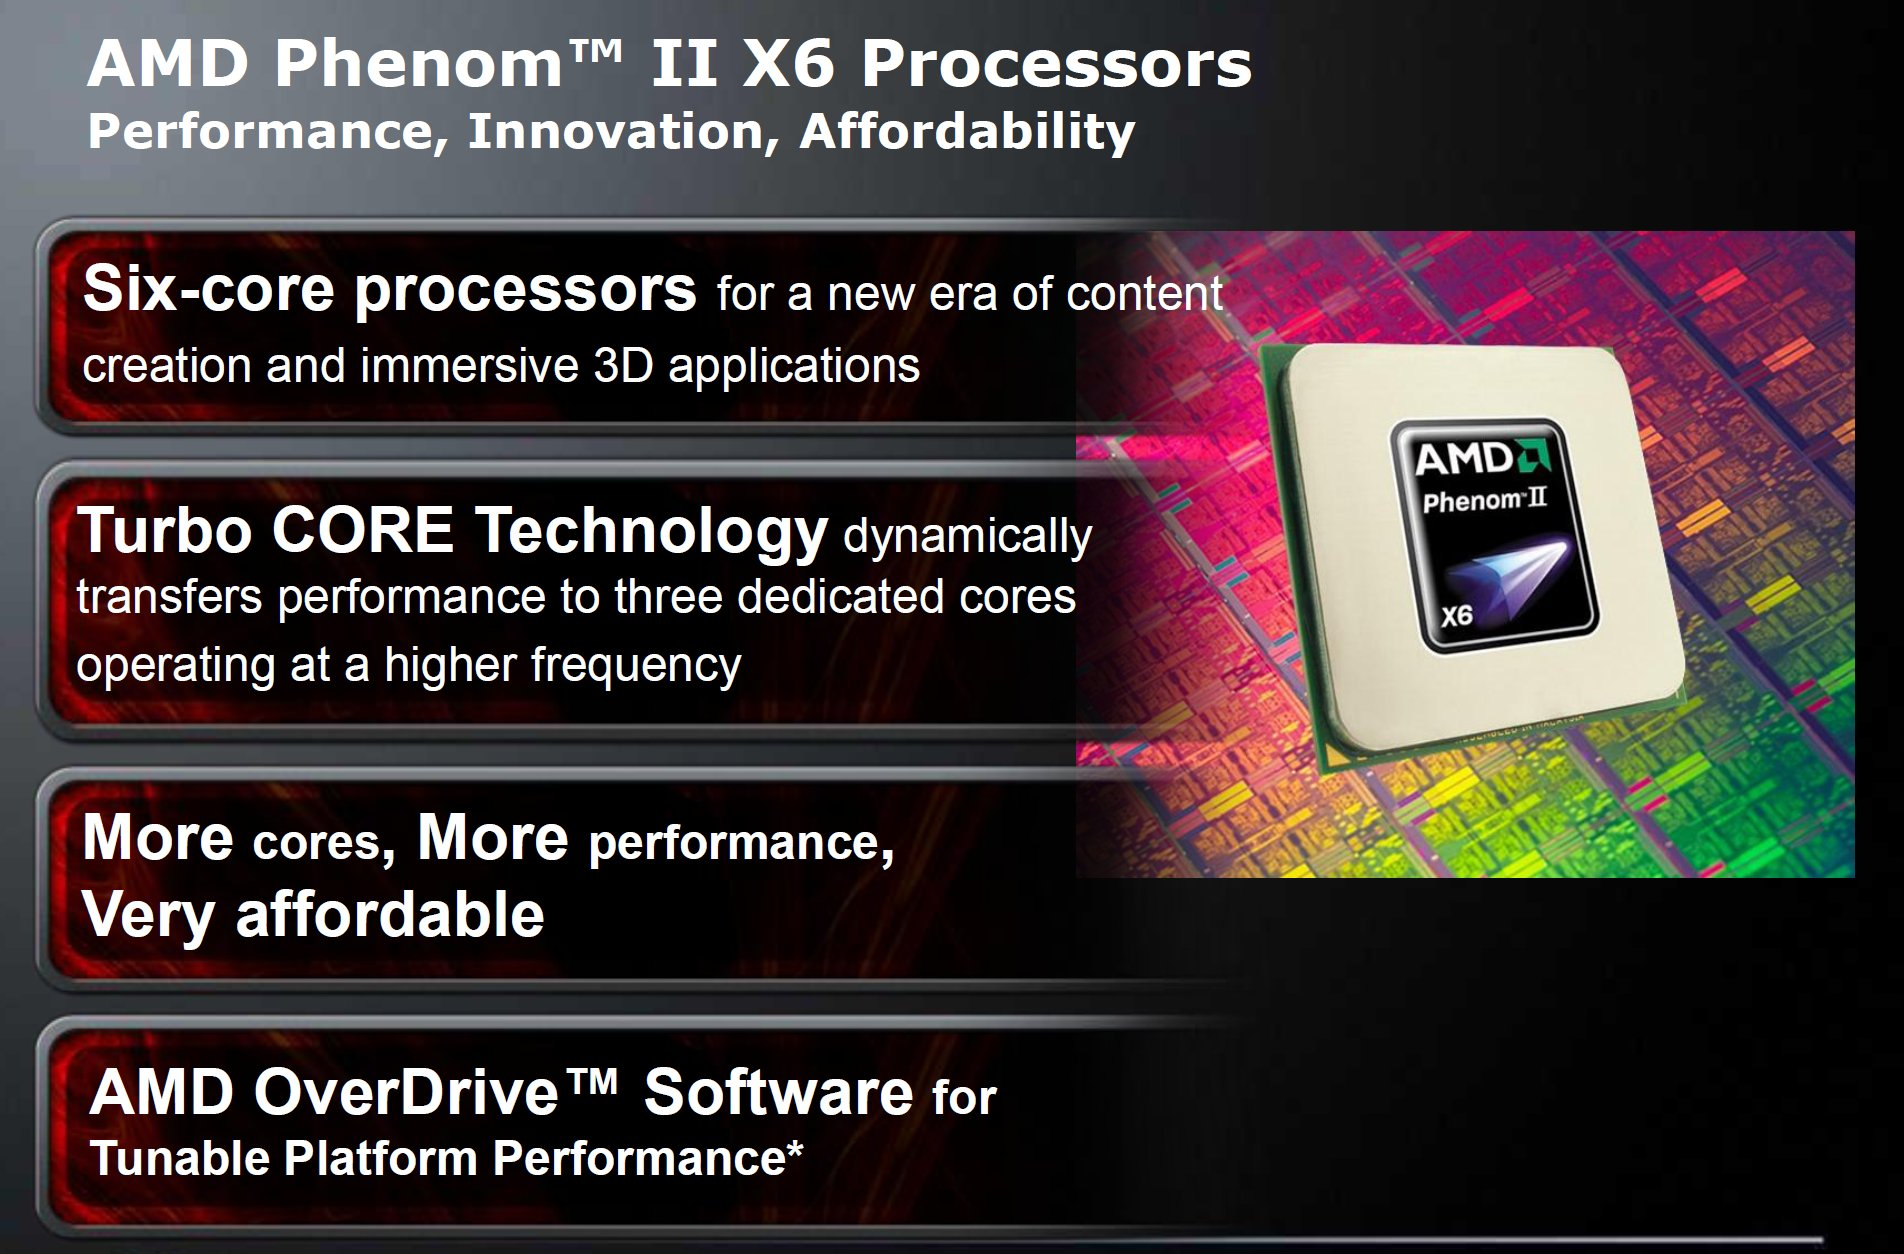 Amd Phenom Ii X6 1090t Be Phenom Ii X6 1055t Review All New Thuban And Zosma Lines For 2010